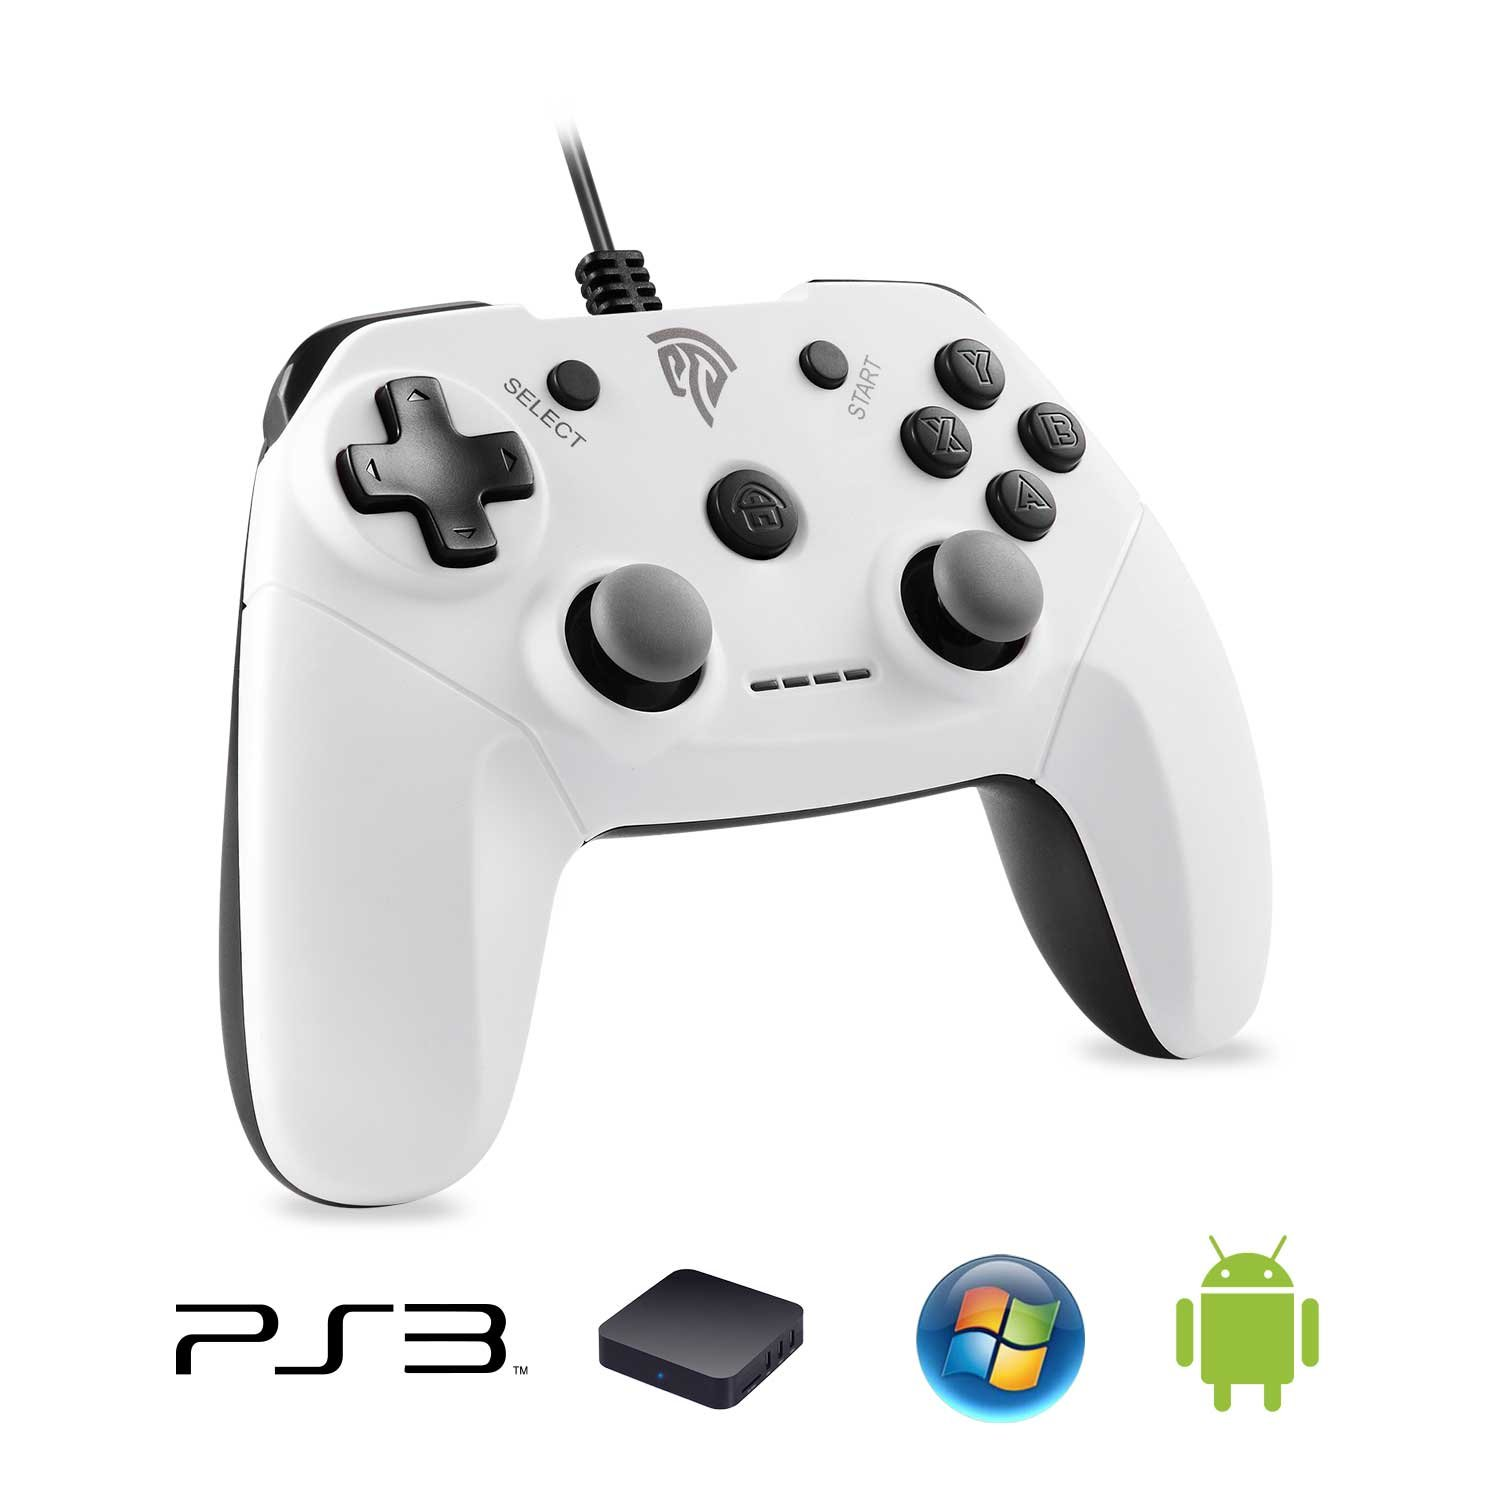 EasySMX PS3 Wired Gamepad for Microsoft 360 Game System Joystick with  Dual-Vibration TURBO and TRIGGER Buttons for PC Windows/Android/PS3/TV Box,  OTG